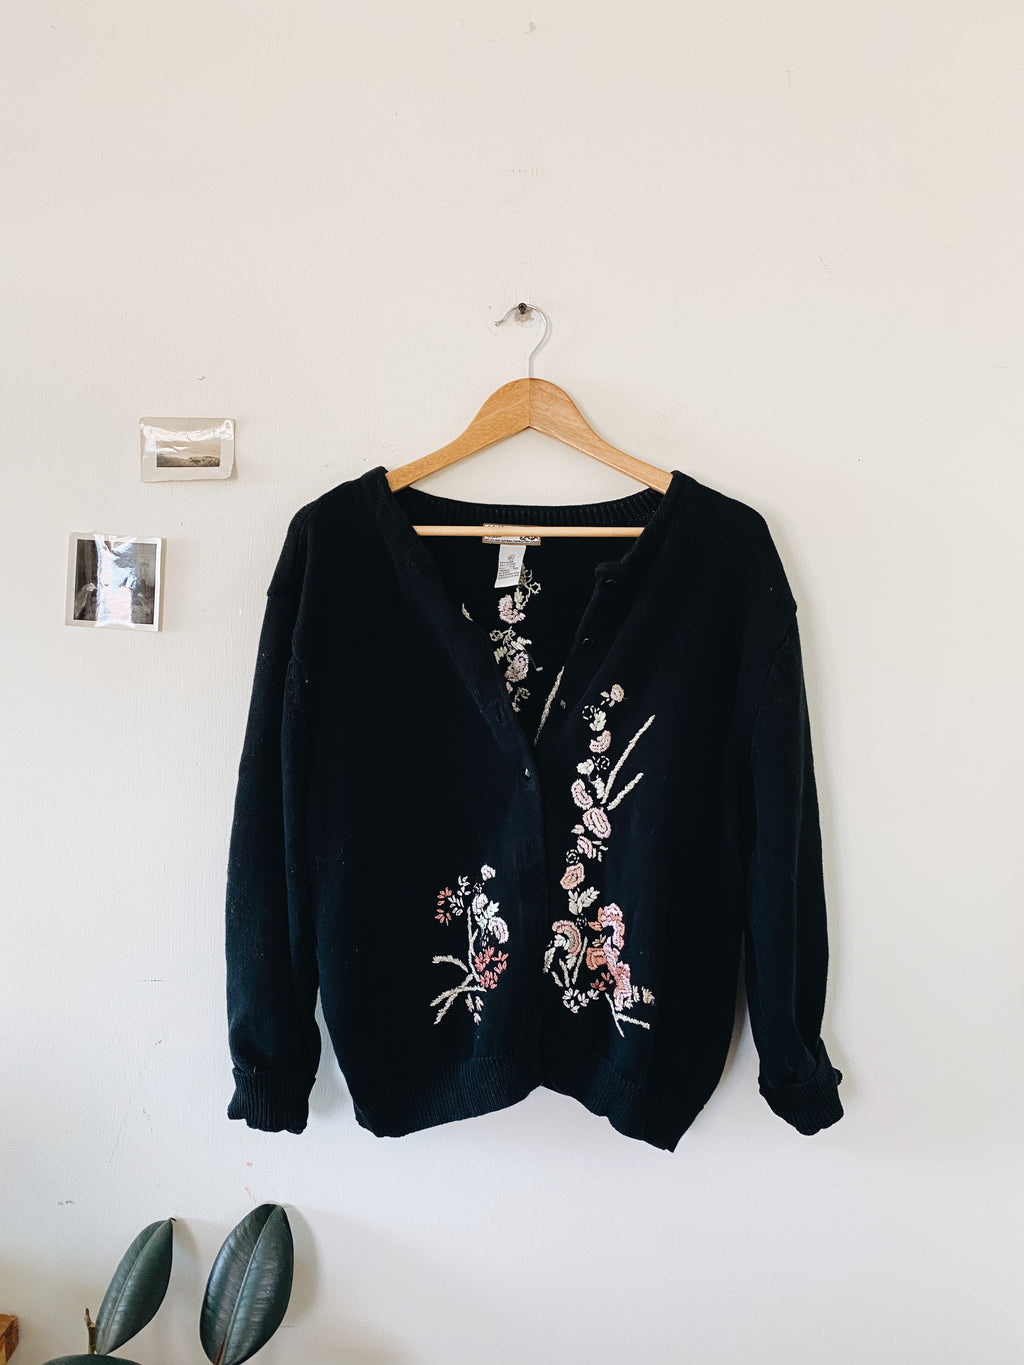 Embroidered Cardigan- Size L/XL